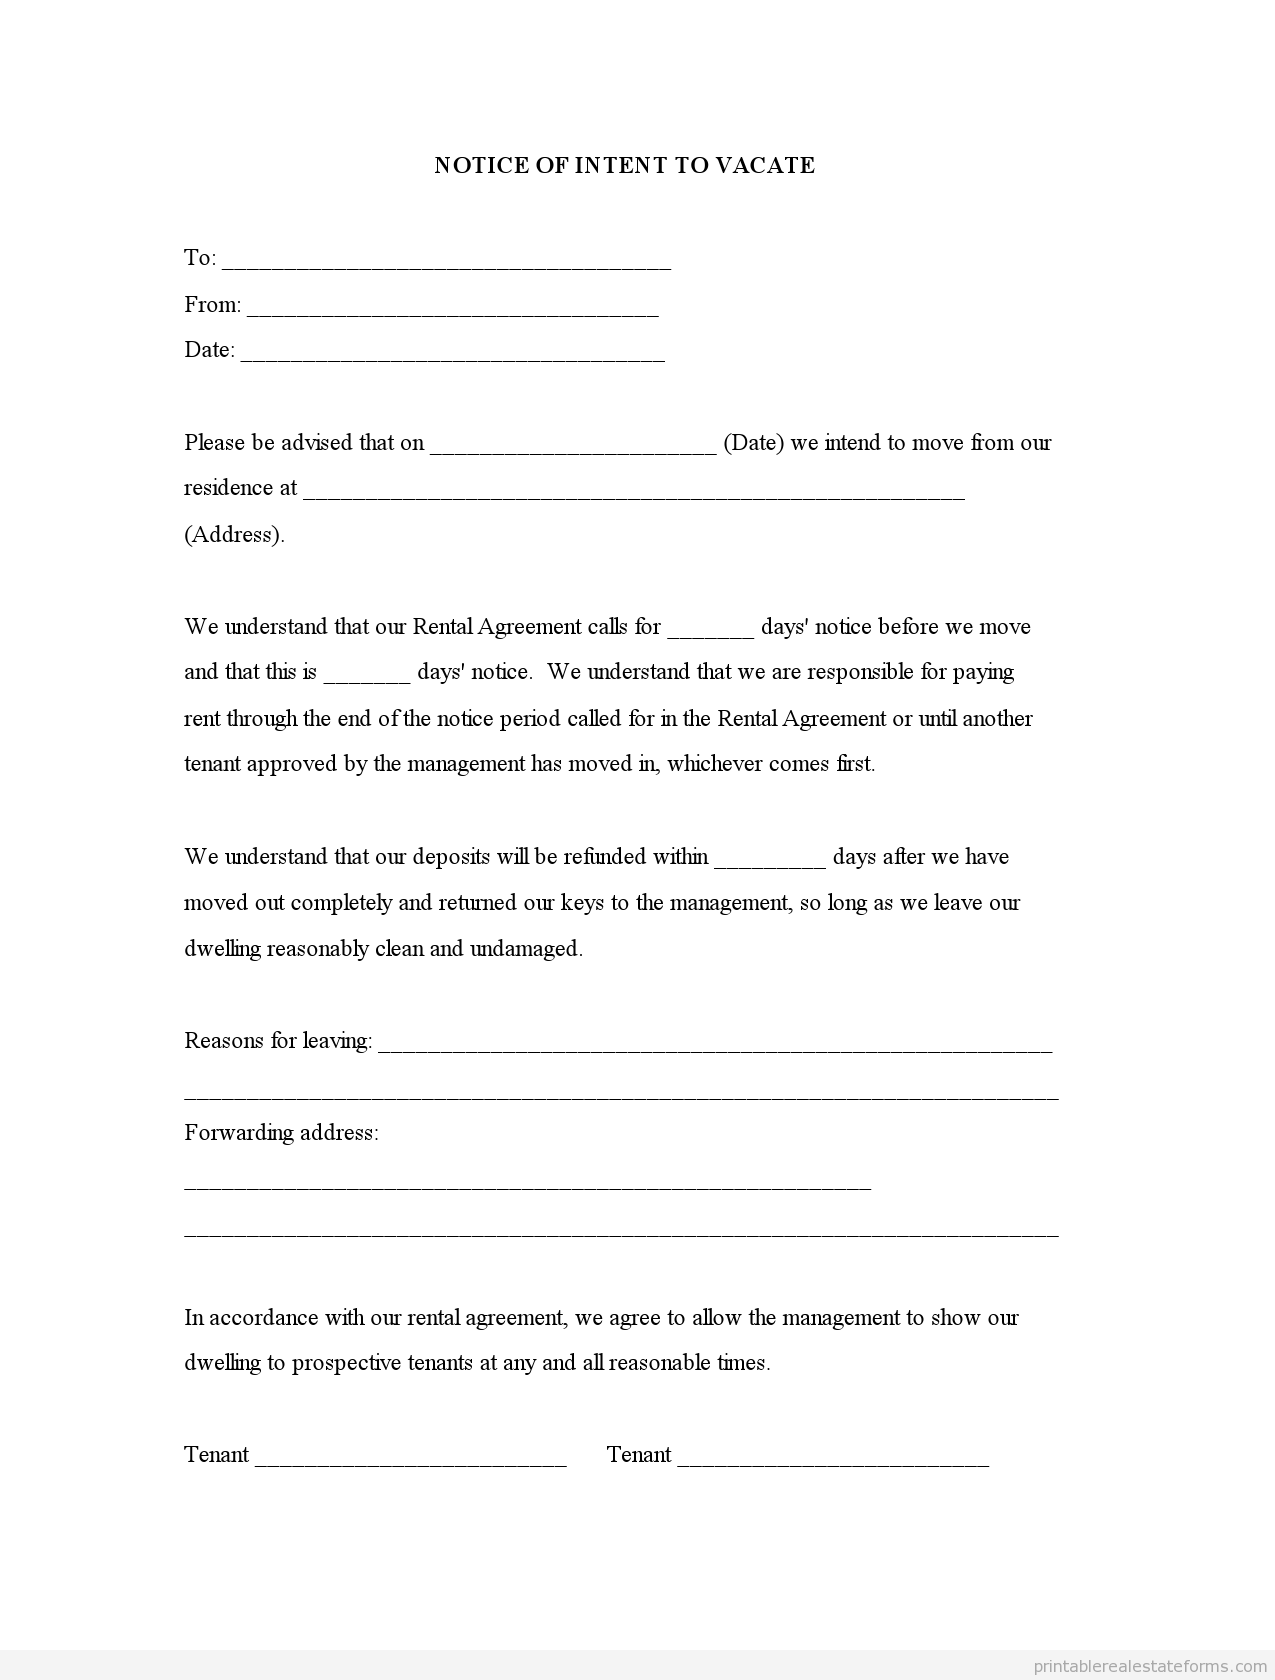 Sample Printable Notice Of Intent To Vacate Form  Printable Real